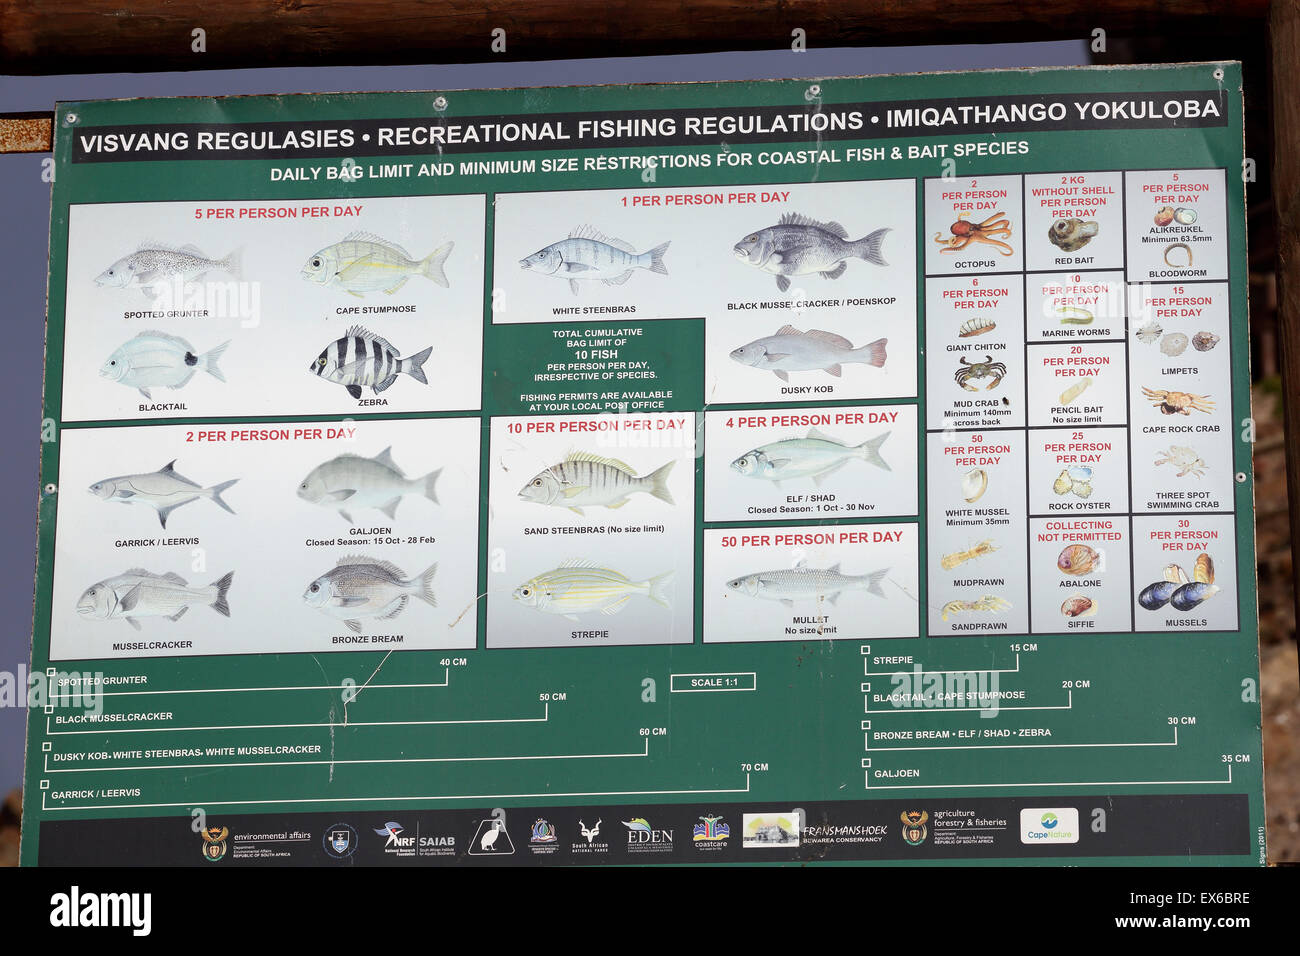 Public information board displaying recreational fishing regulations and daily quotas in Mossel Bay, South Africa - Stock Image